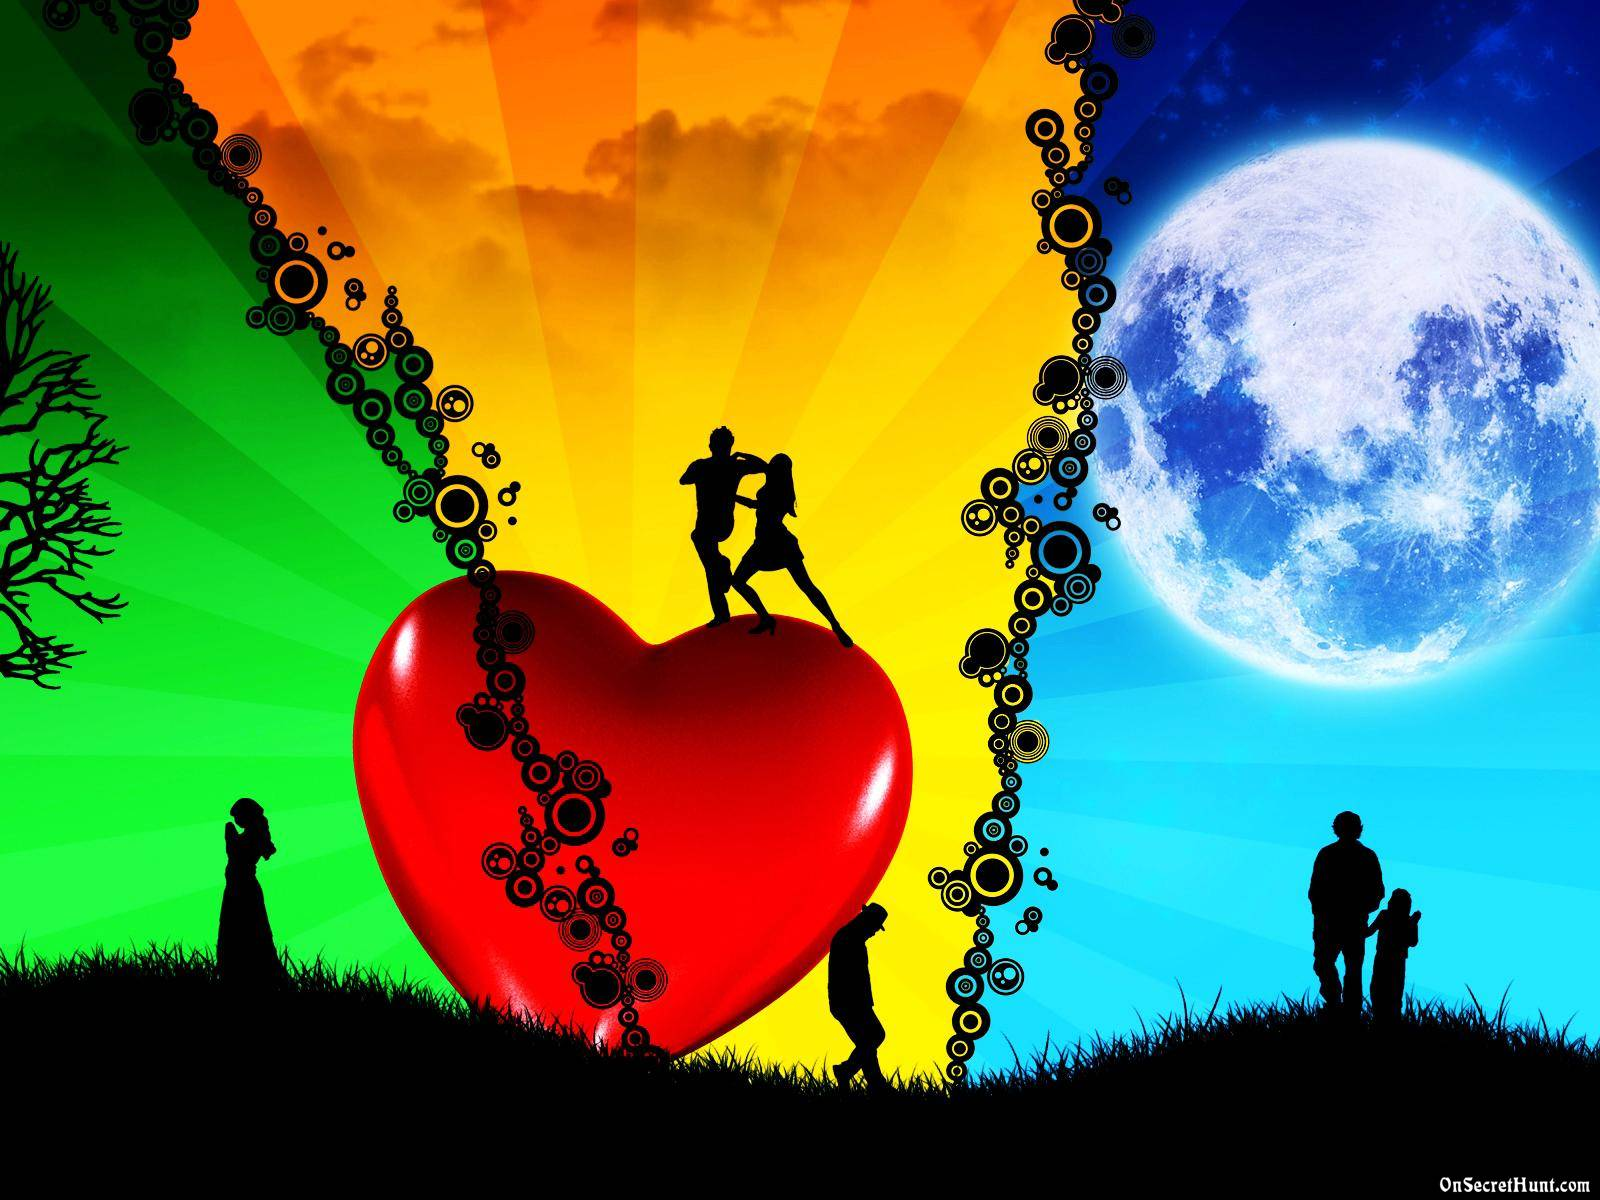 Love Wallpaper New : Love Wallpapers 3D - Wallpaper cave